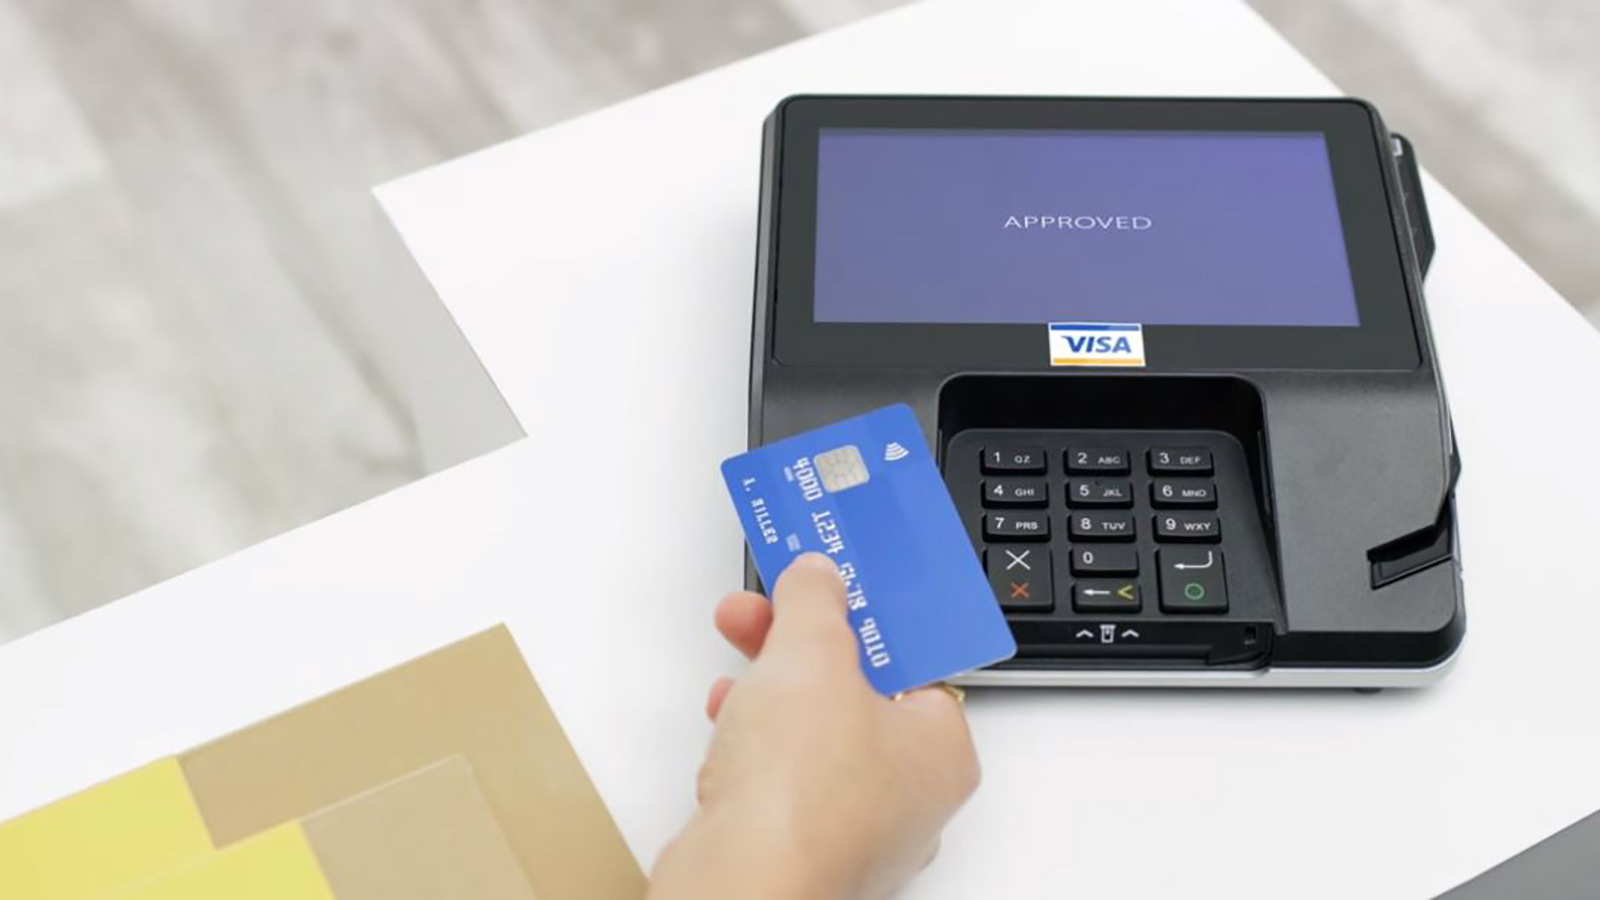 Person holding a Visa card at a contactless payment terminal.